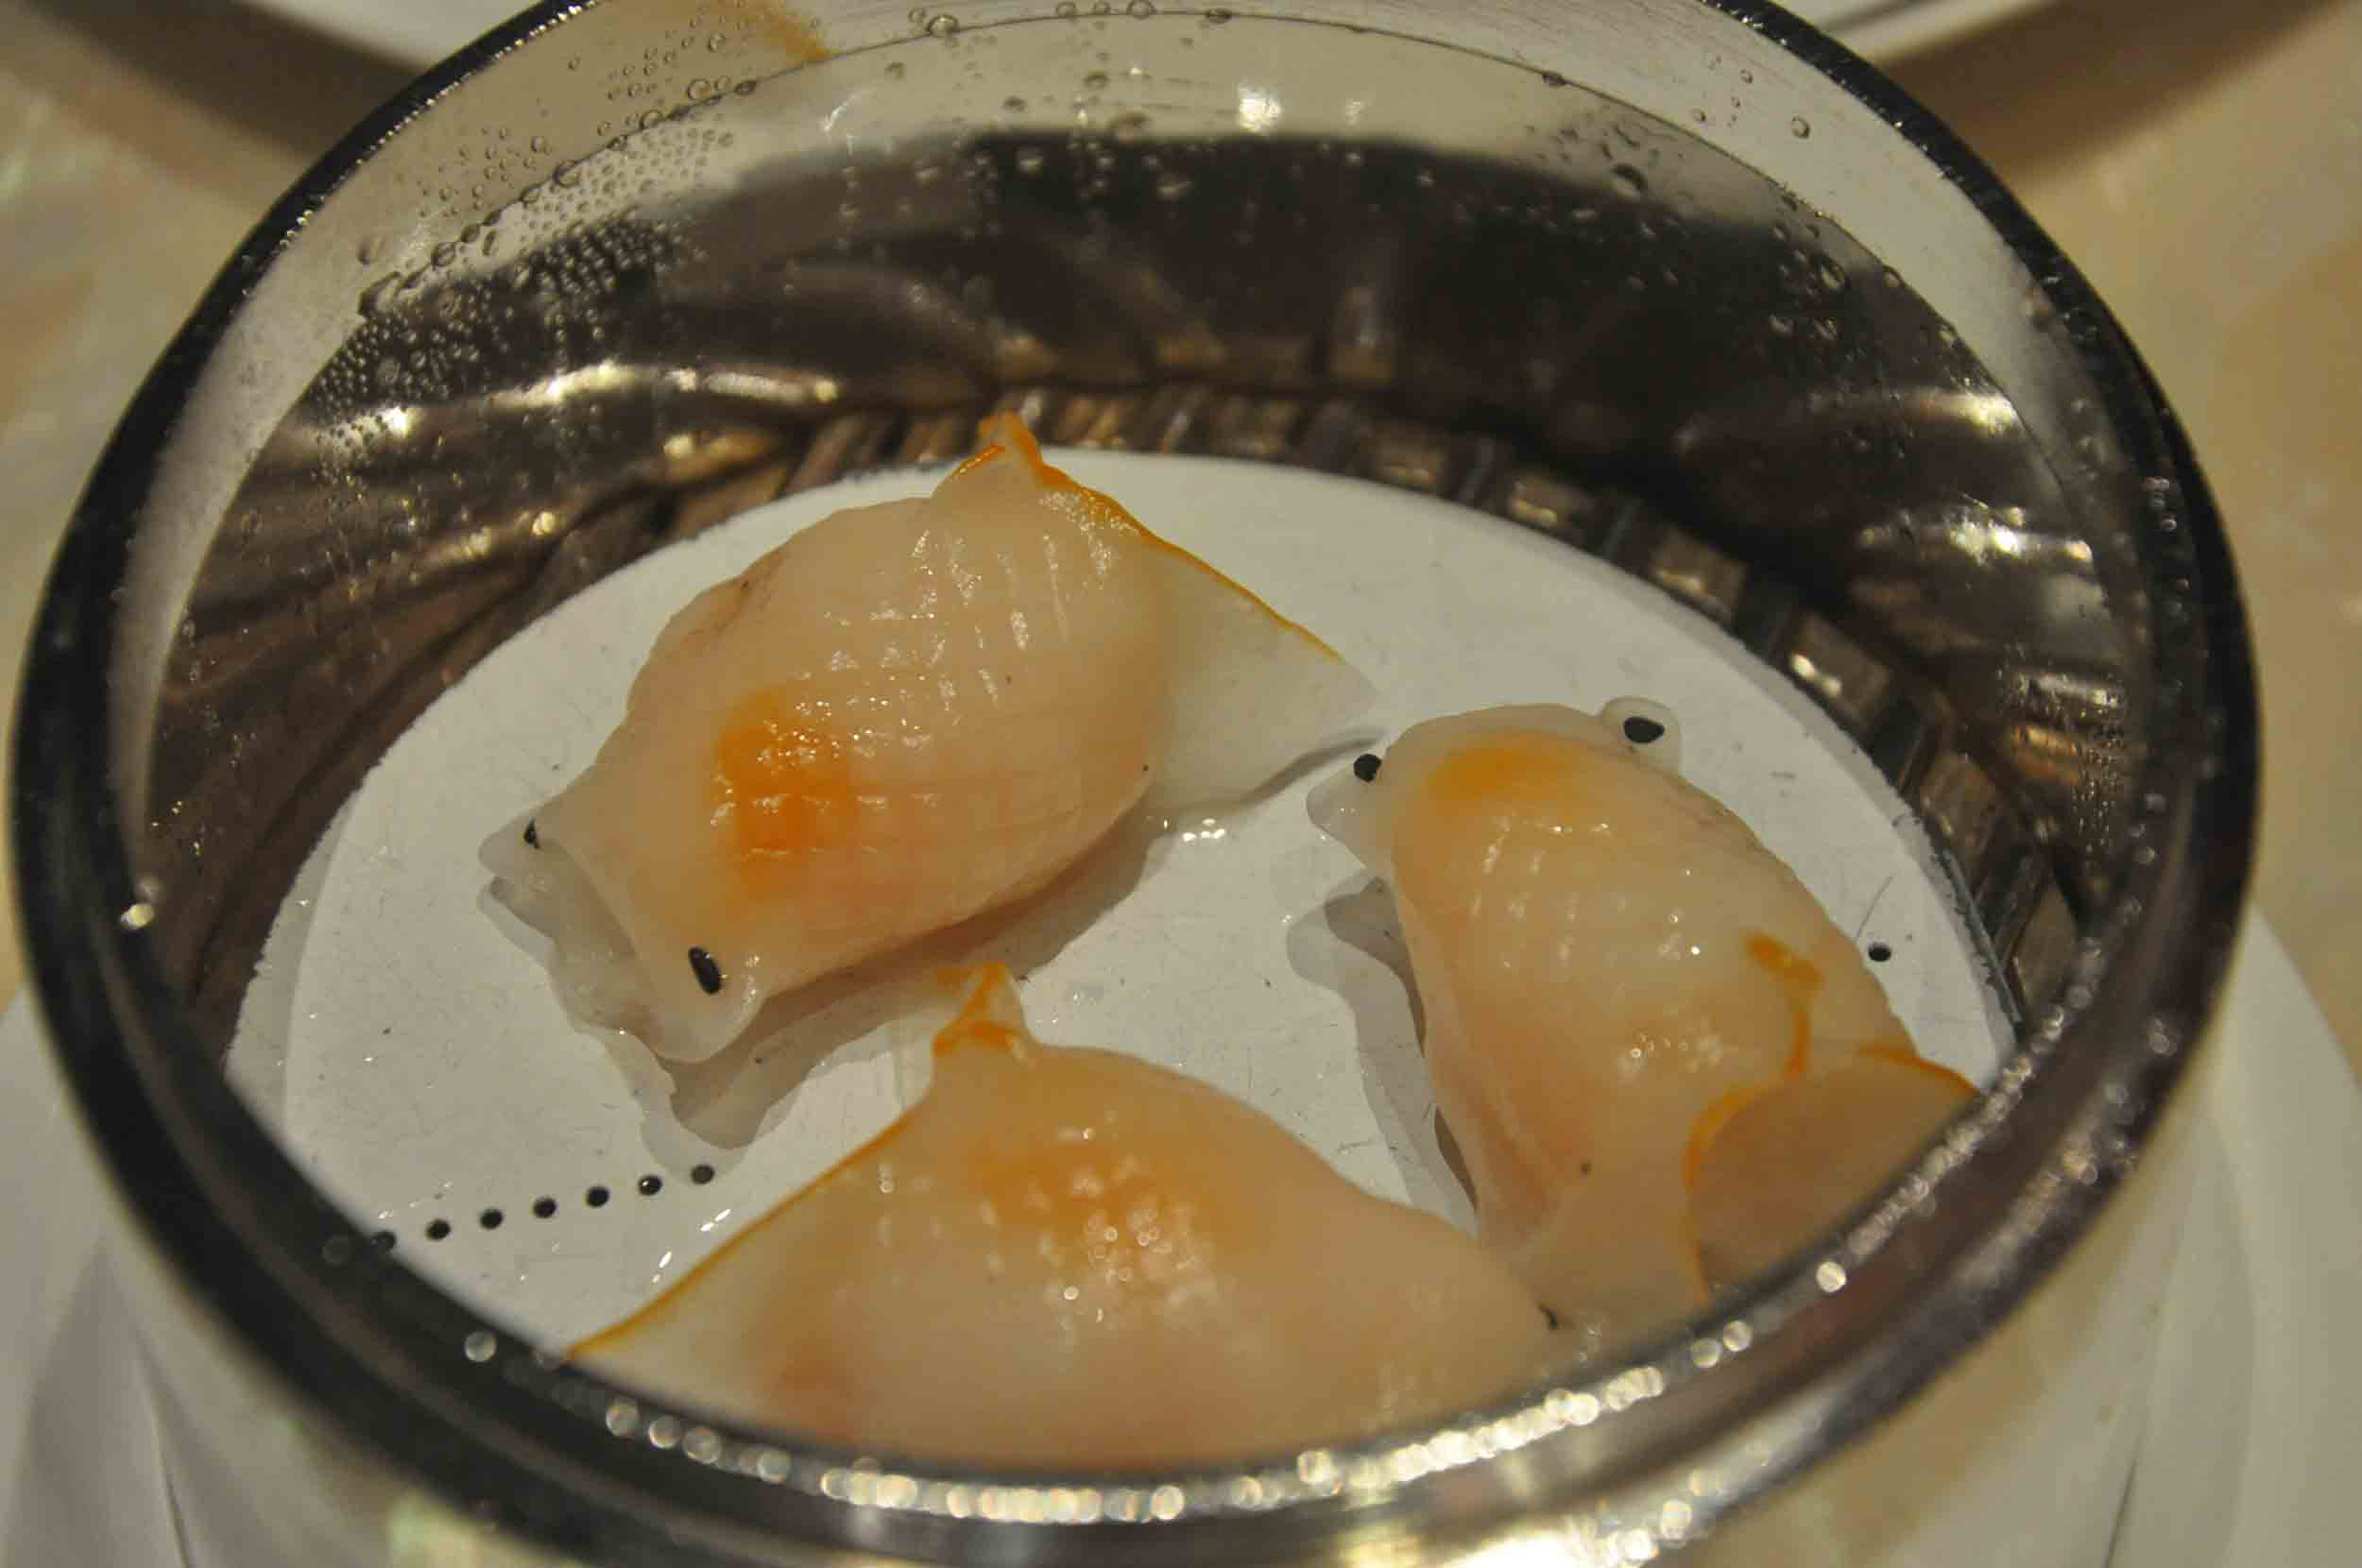 Macau Michelin Restaurants: Cristal Blue Shrimp Dumplings at 8 Macau